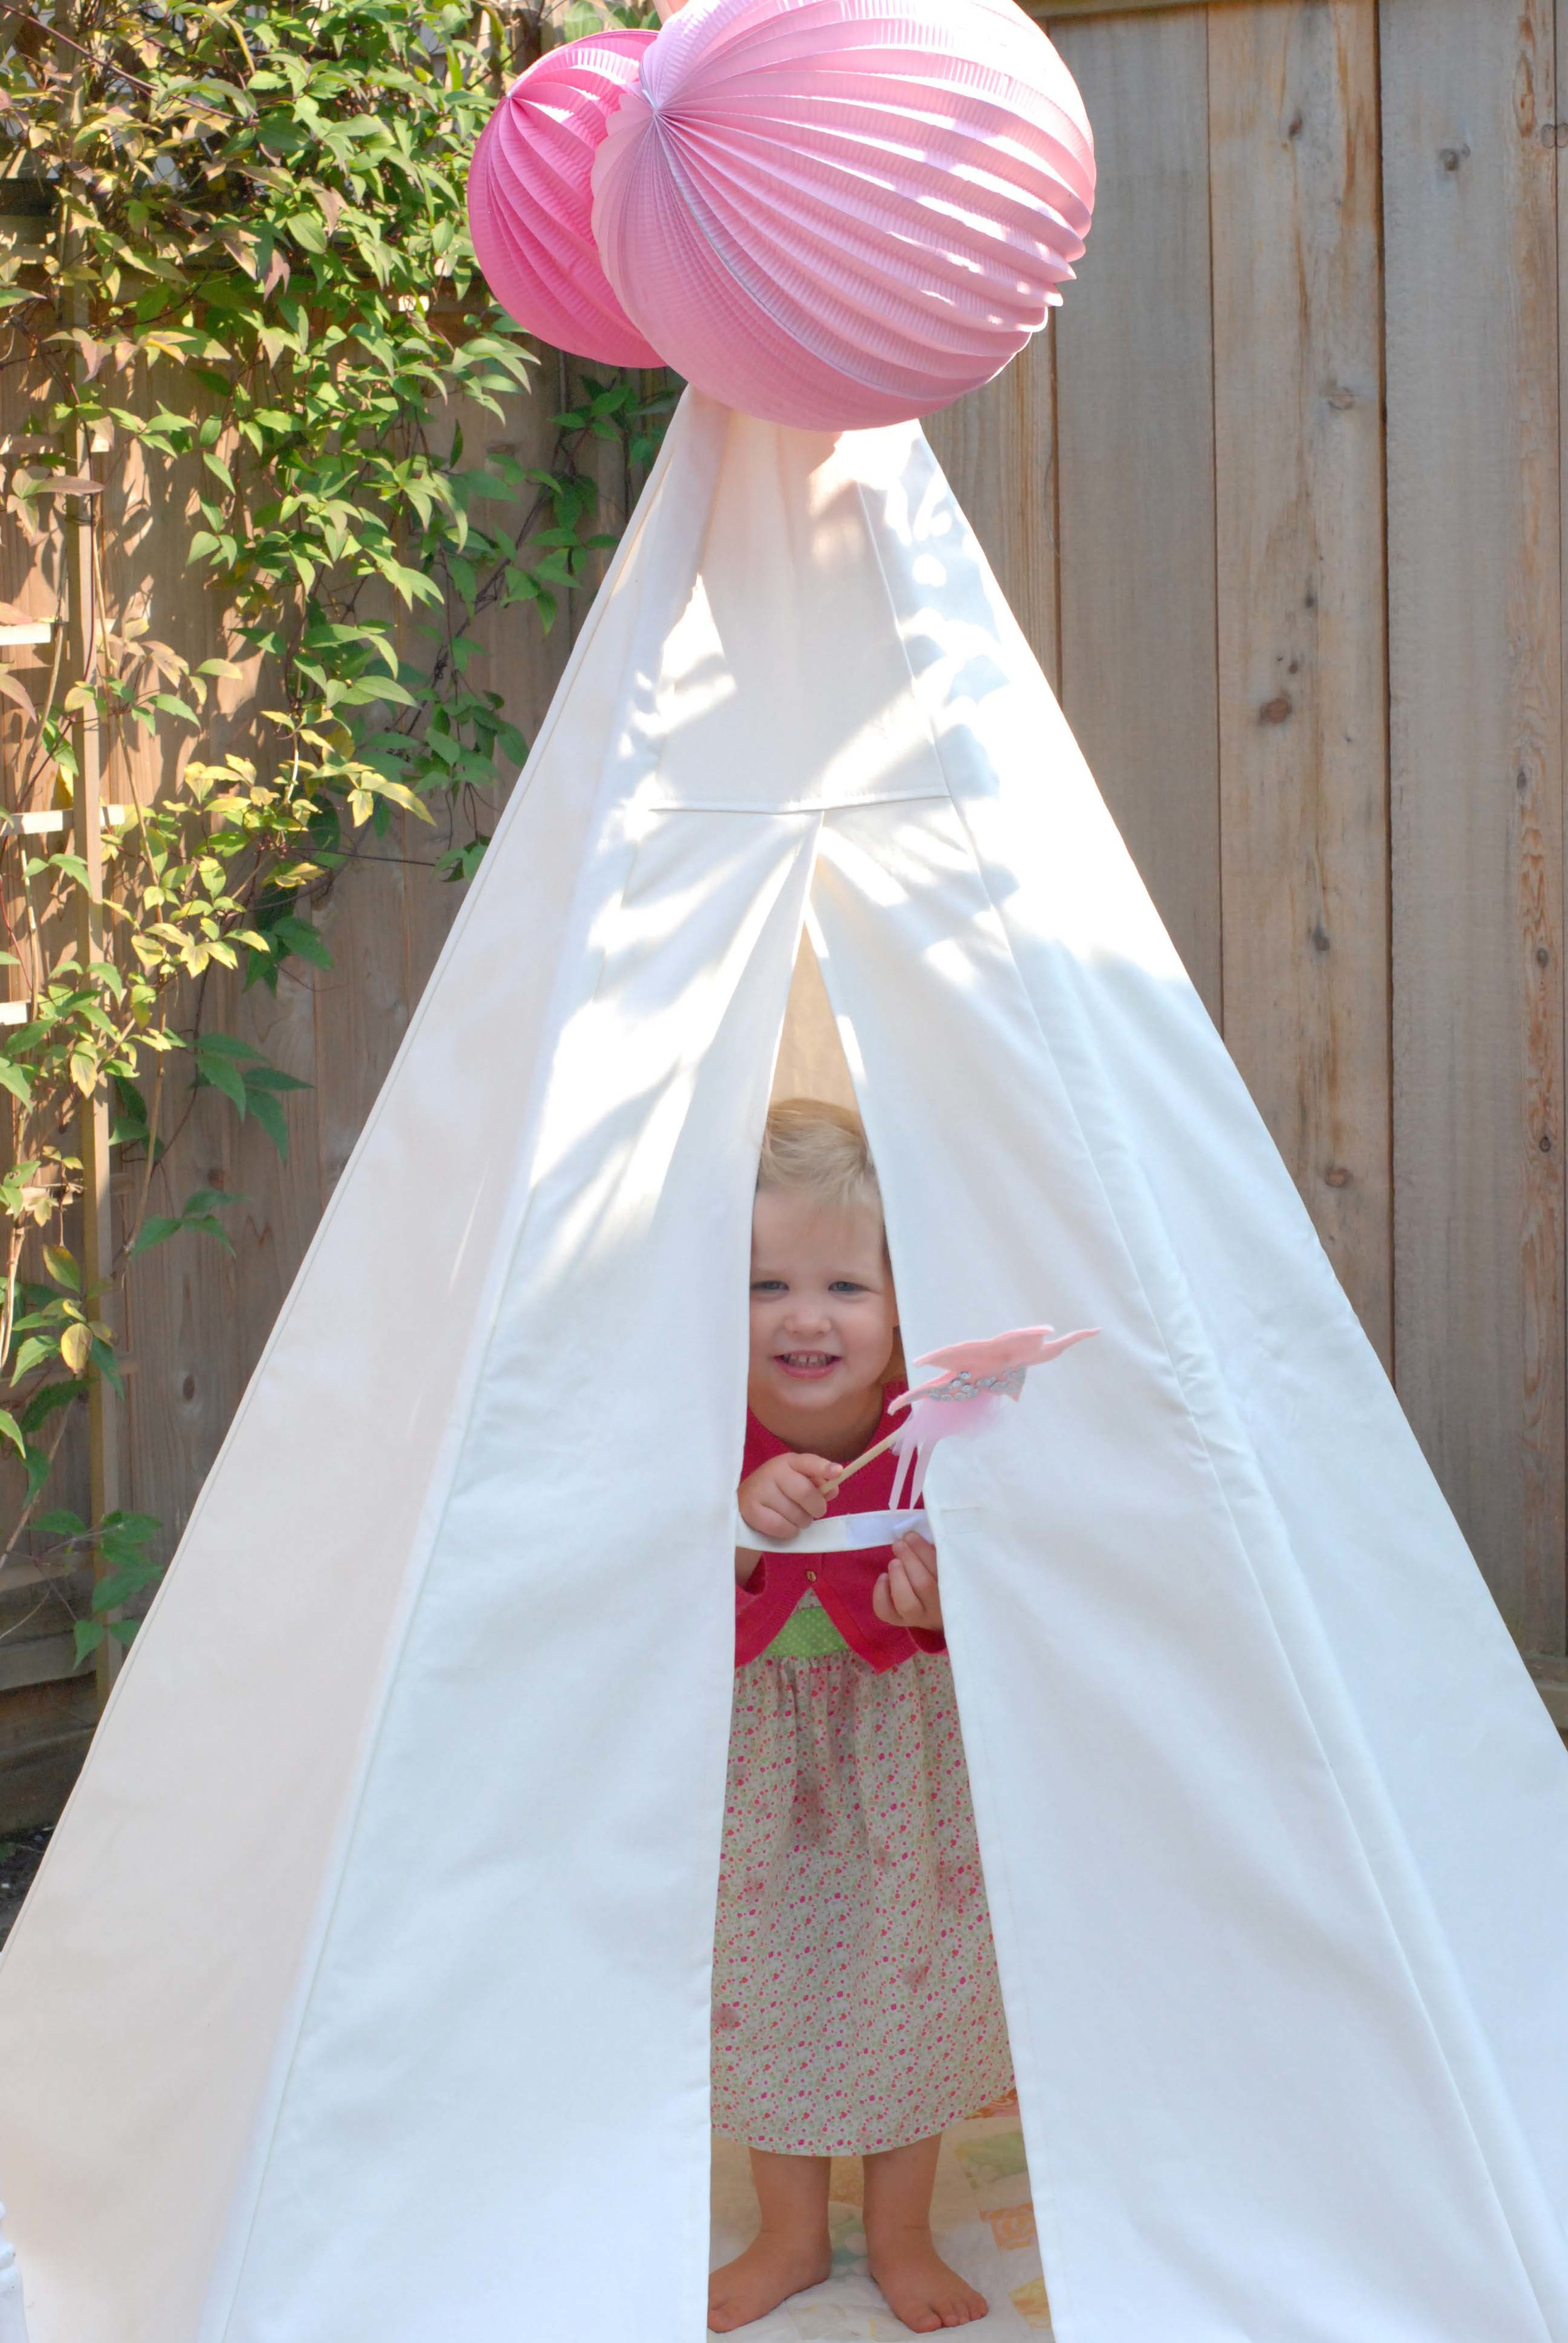 peeking out of teepee